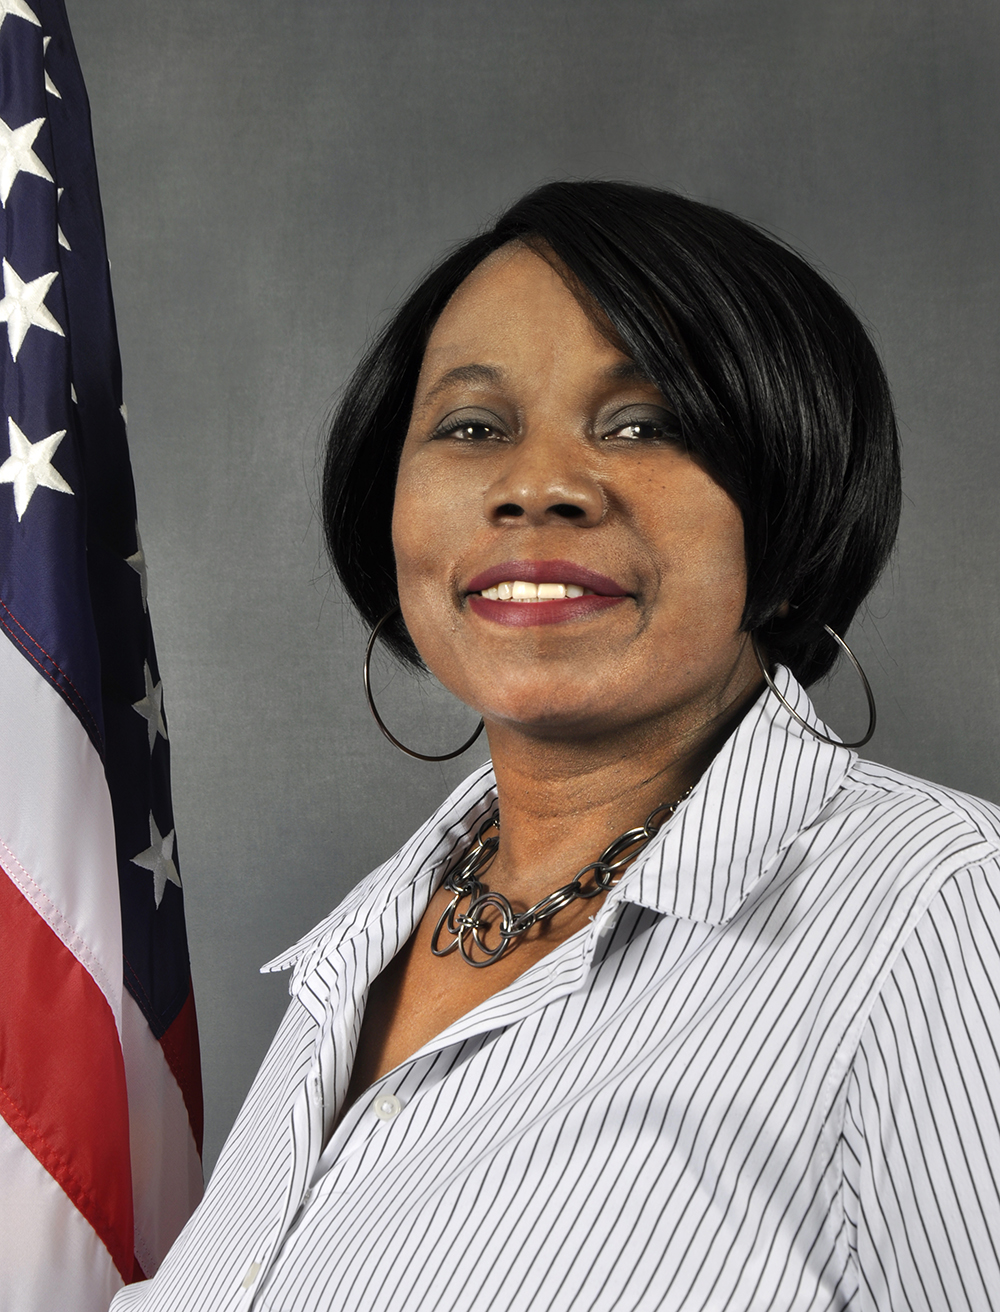 Cynthia Gaines, Administrative Services Division Manager